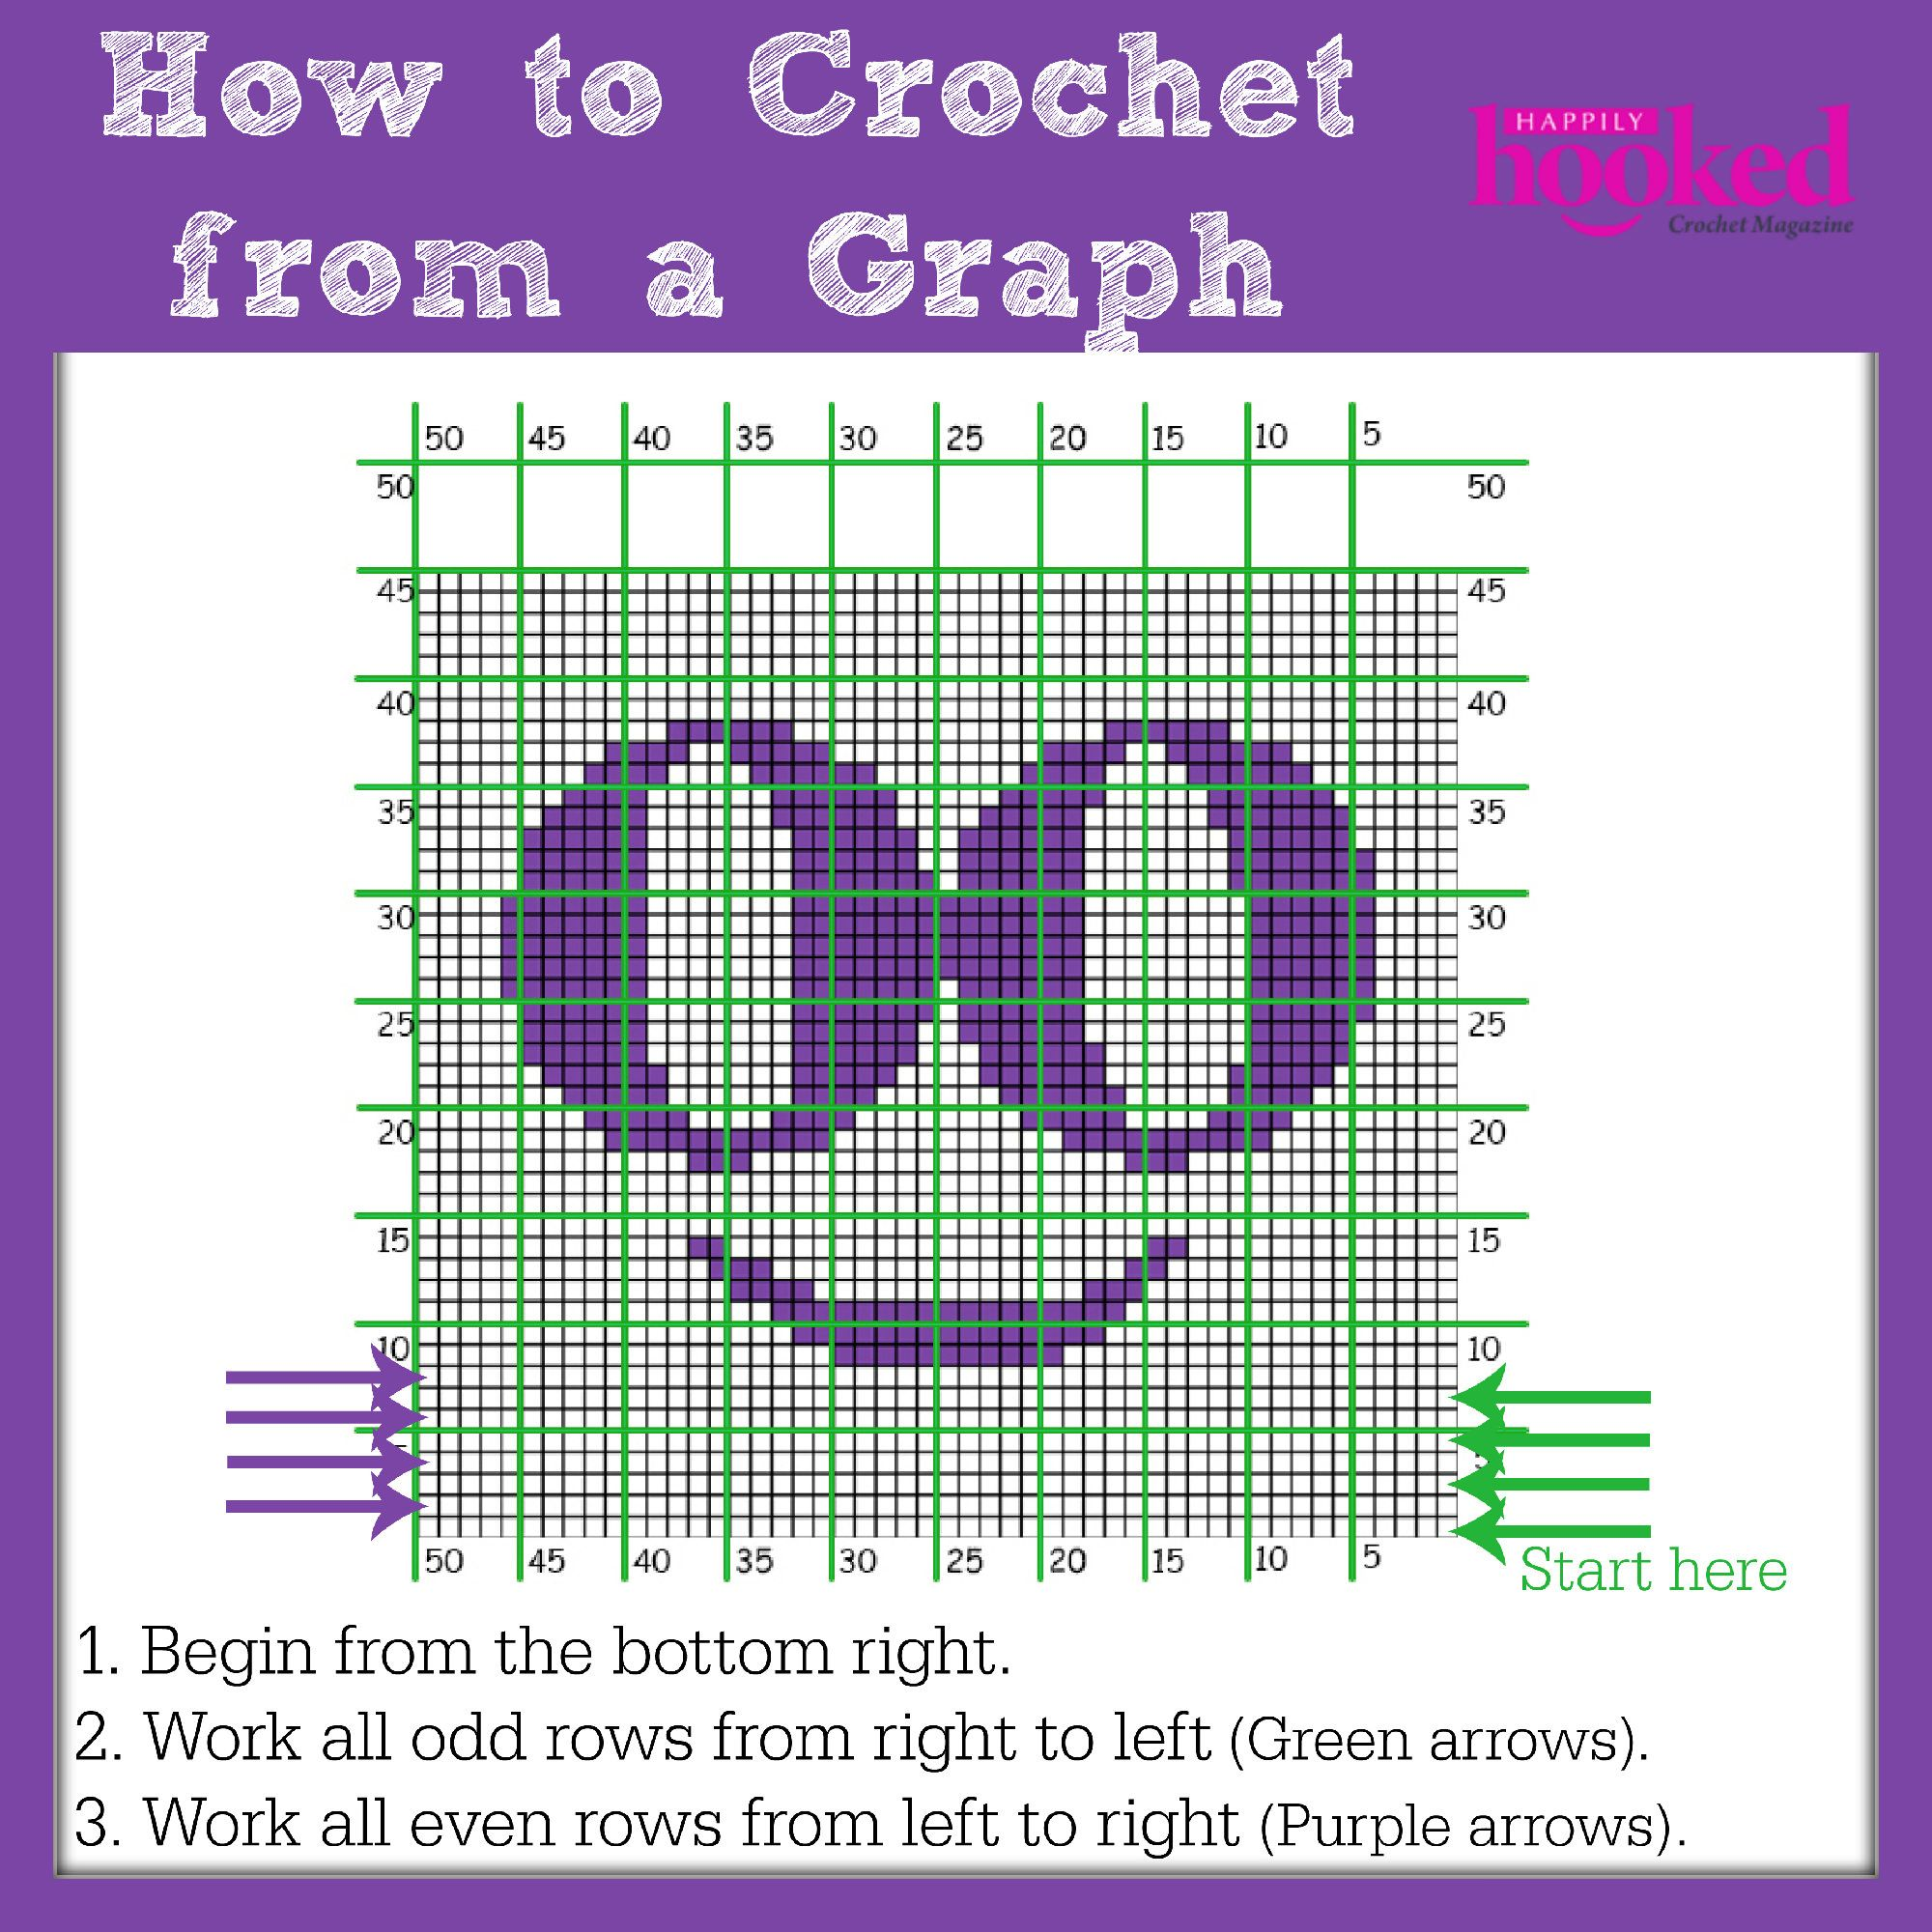 How to read a crochet graph happily hooked magazine